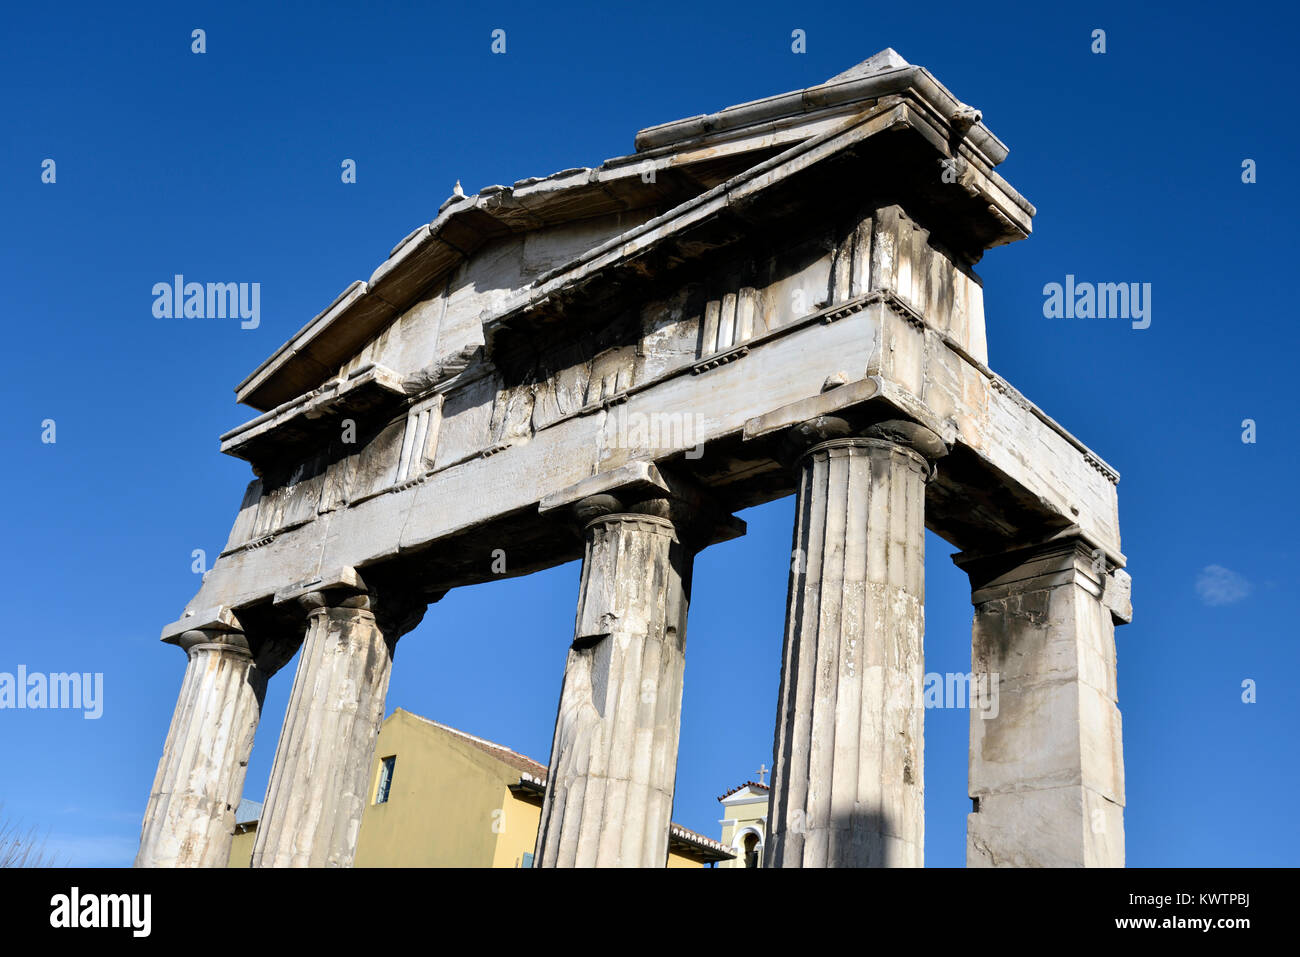 The gate of Athina Archegetis in Roman Market, Athens, Greece - Stock Image